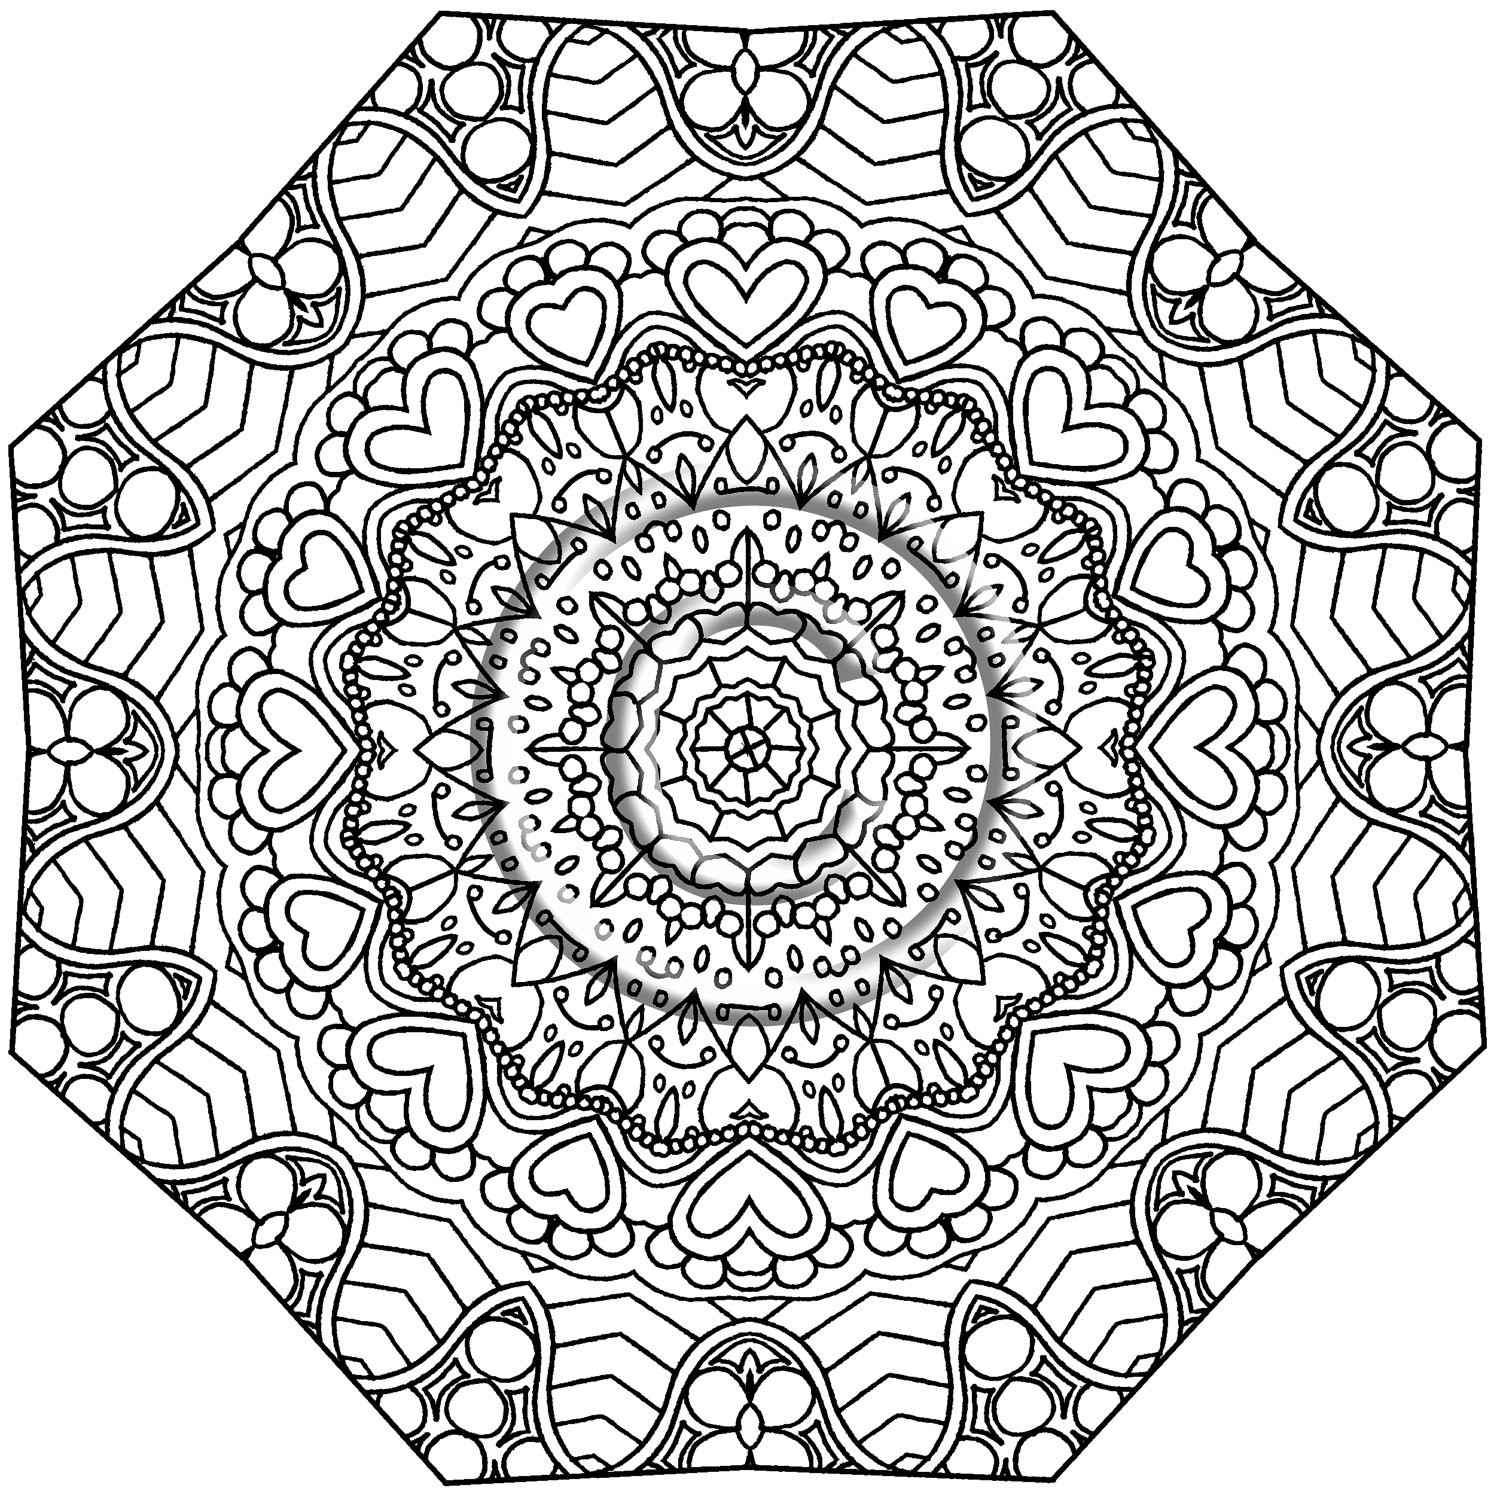 Best ideas about Kaleidoscope Printable Coloring Pages . Save or Pin Kaleidoscope Coloring Pages Bestofcoloring Now.